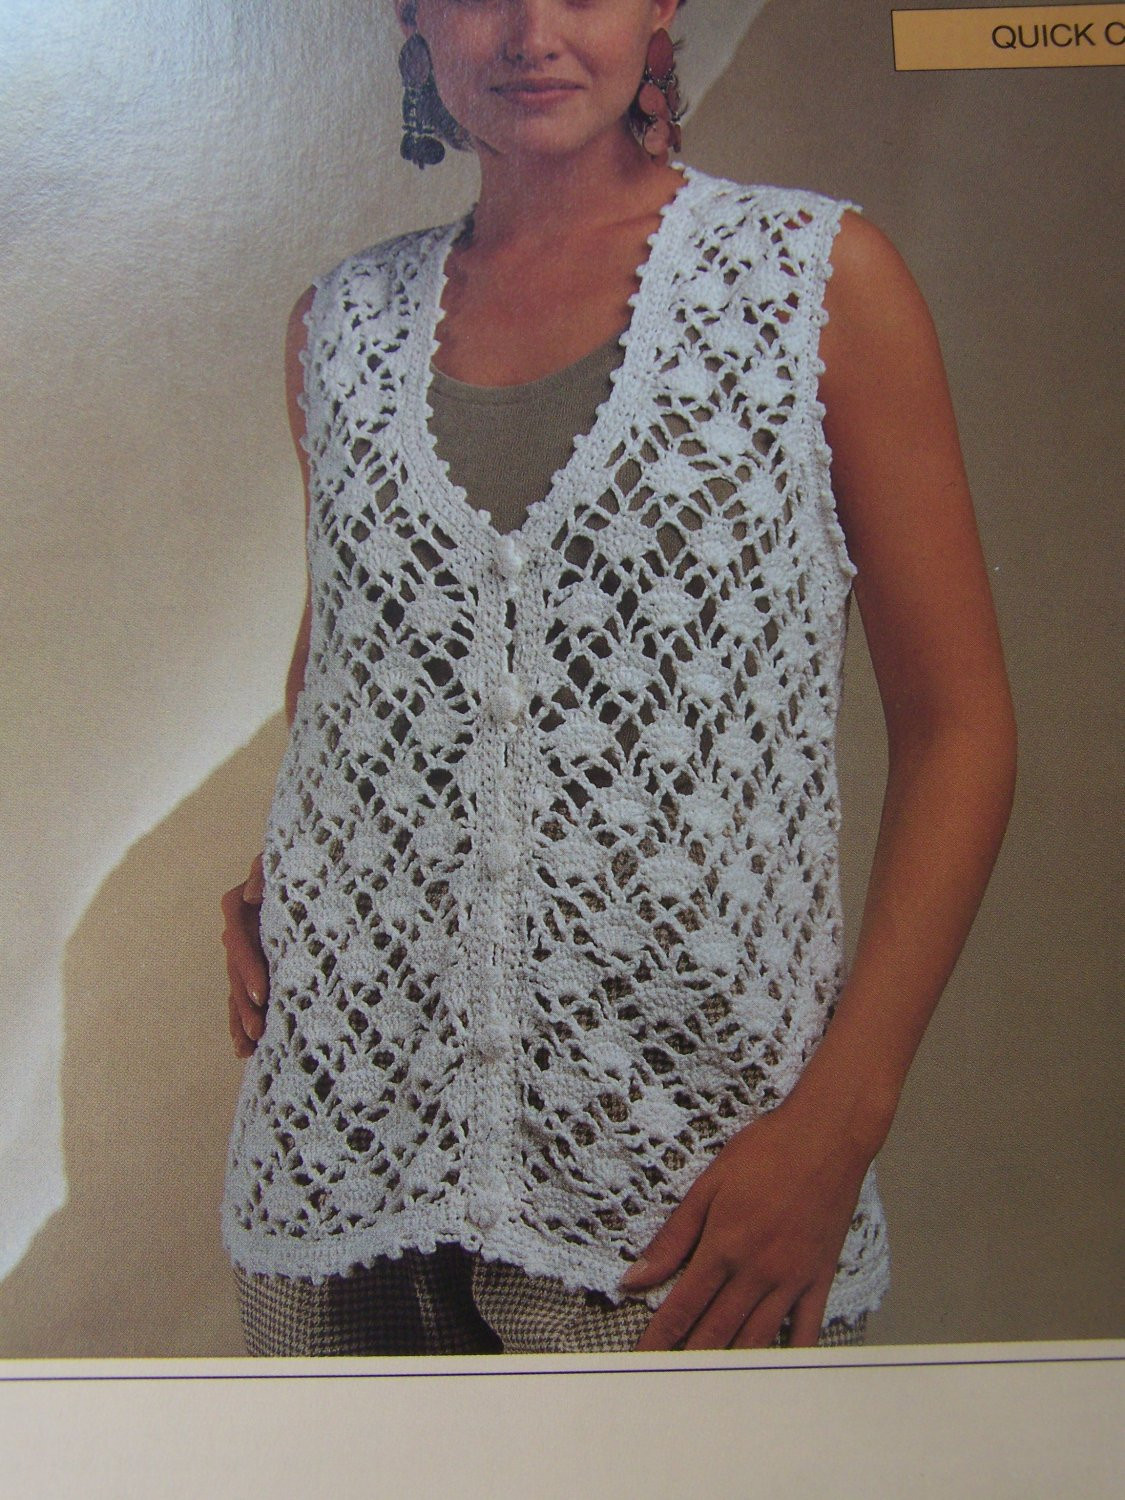 New Bernat La s Clothing Crochet Patterns Diamond Lace